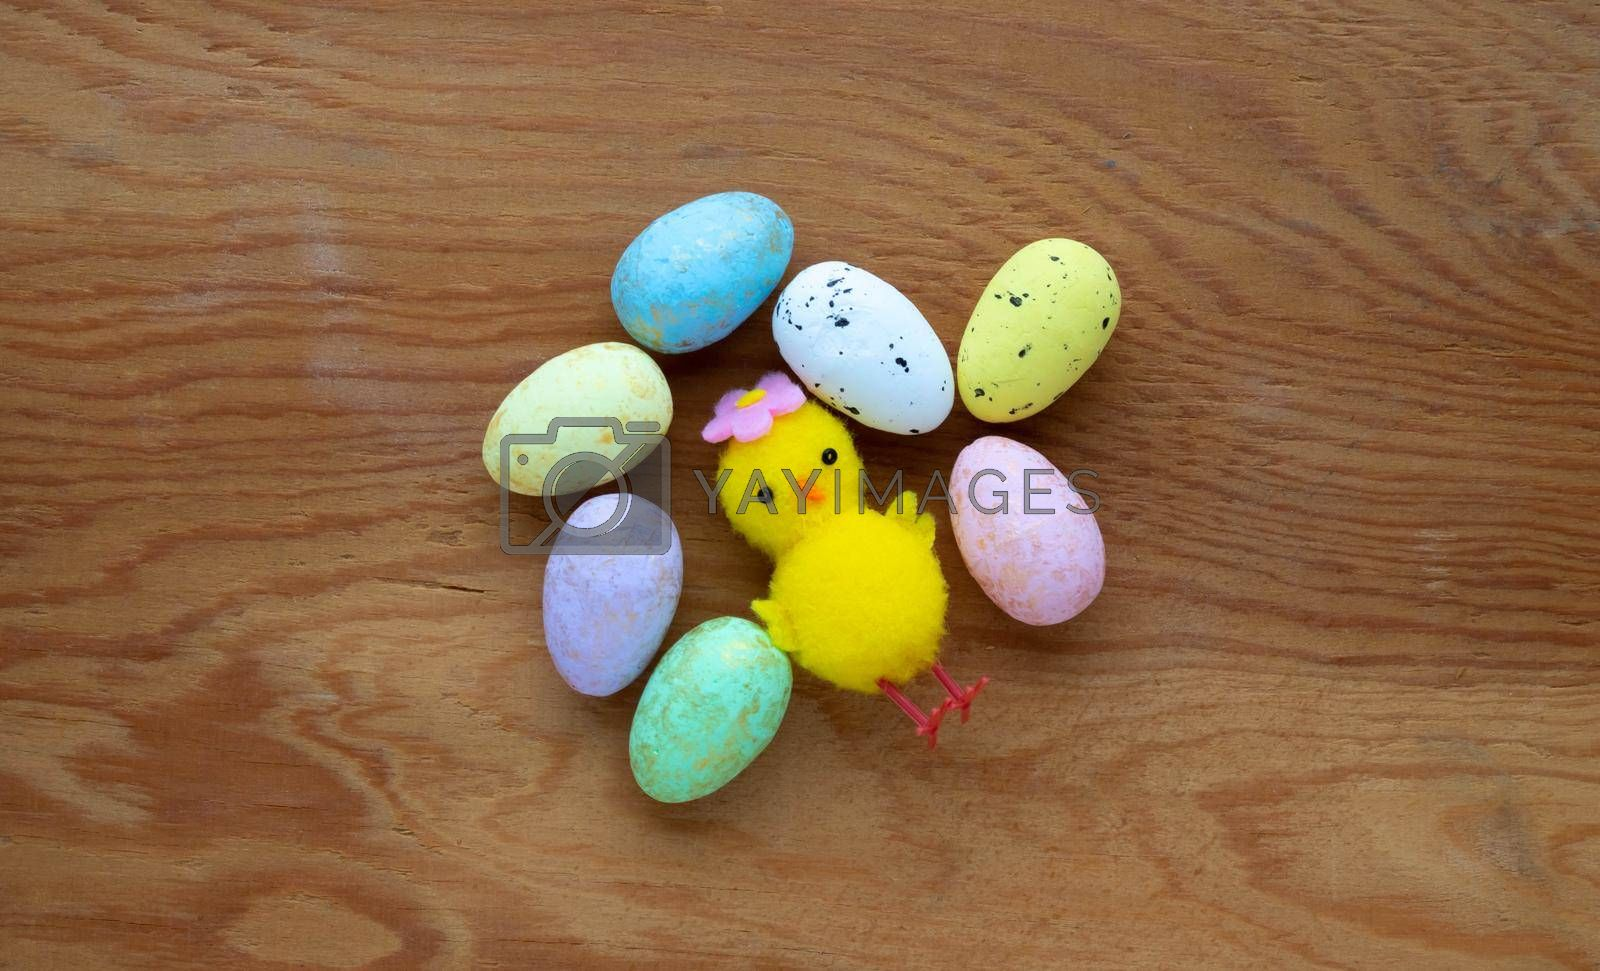 Colorful Easter toy eggs and a yellow toy chicken on a wooden background.The Concept Of Easter by lapushka62